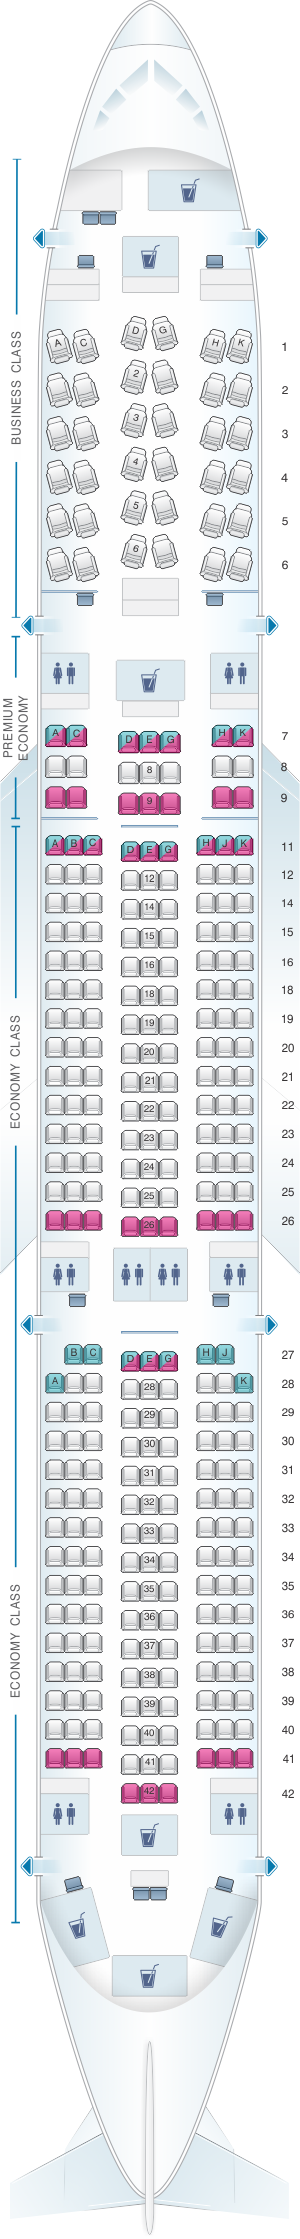 Seat map for Lufthansa Airbus A350 900 Config.2